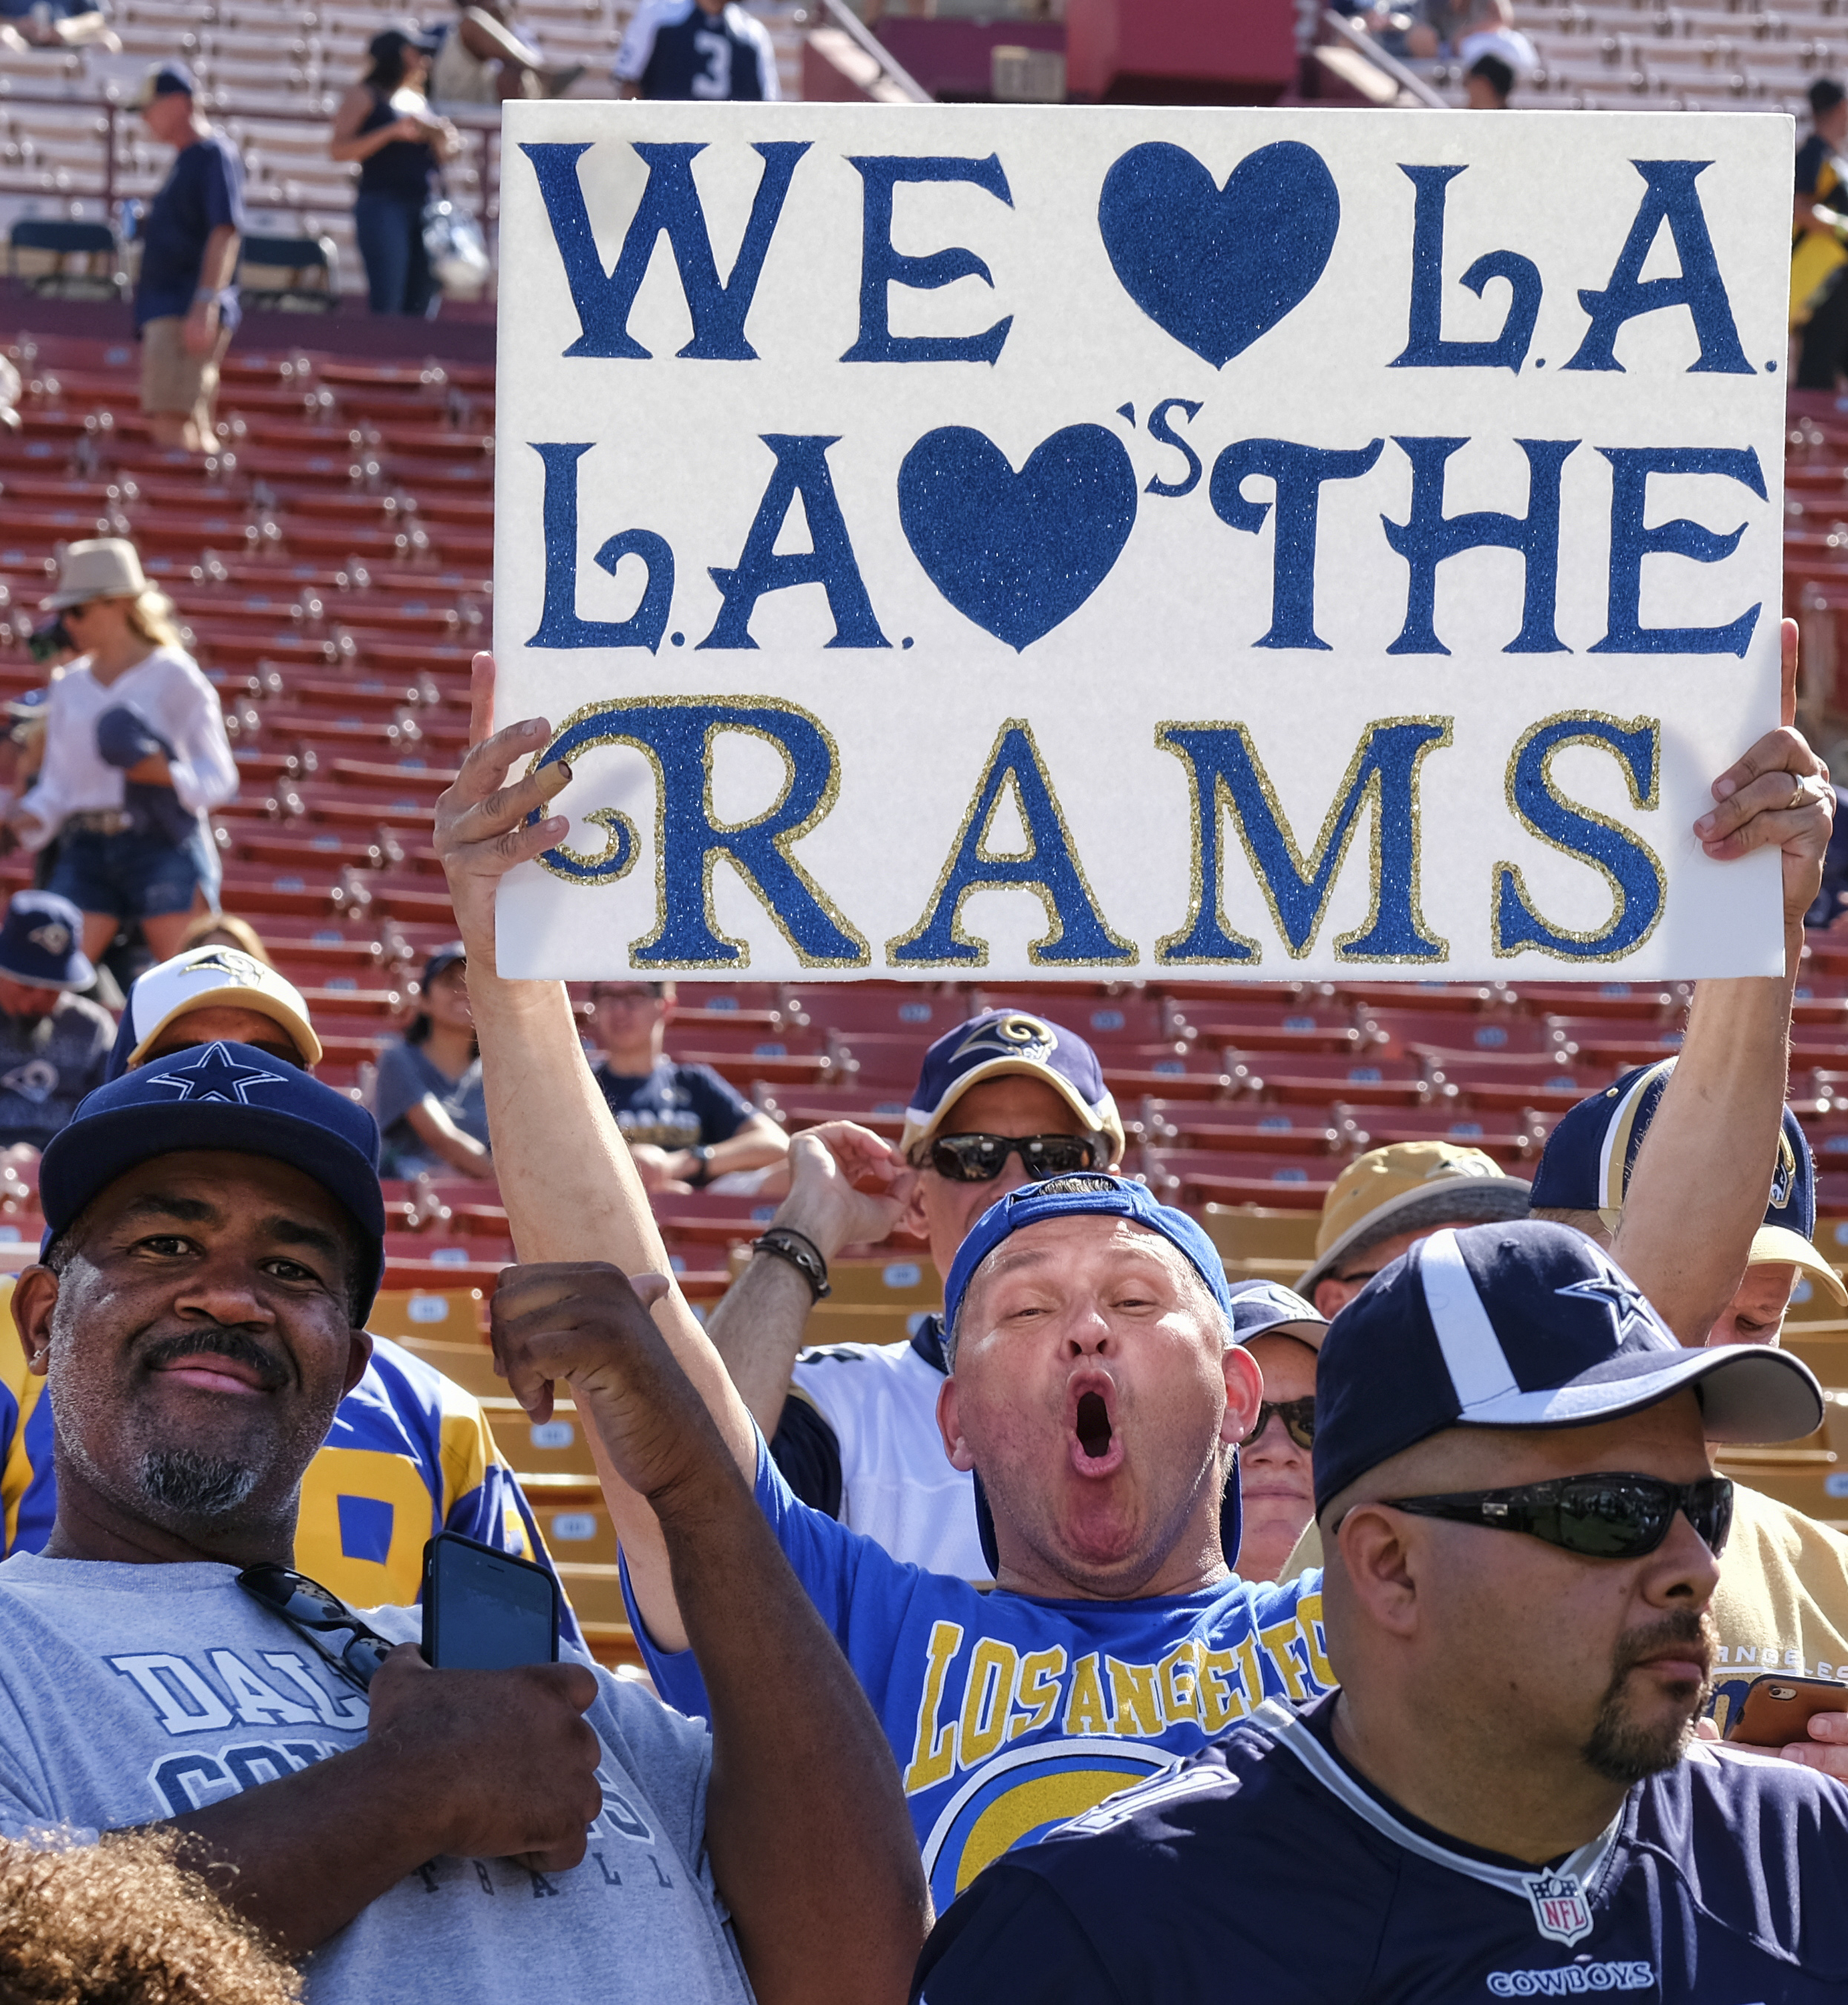 A Los Angeles Rams fan displays a sign while waiting for his team to arrive at Los Angeles Memorial Coliseum on Saturday, Aug. 13, 2016. Los Angeles fans celebrate the return of the NFL and their long-lost Los Angeles Rams to the city at the team's first